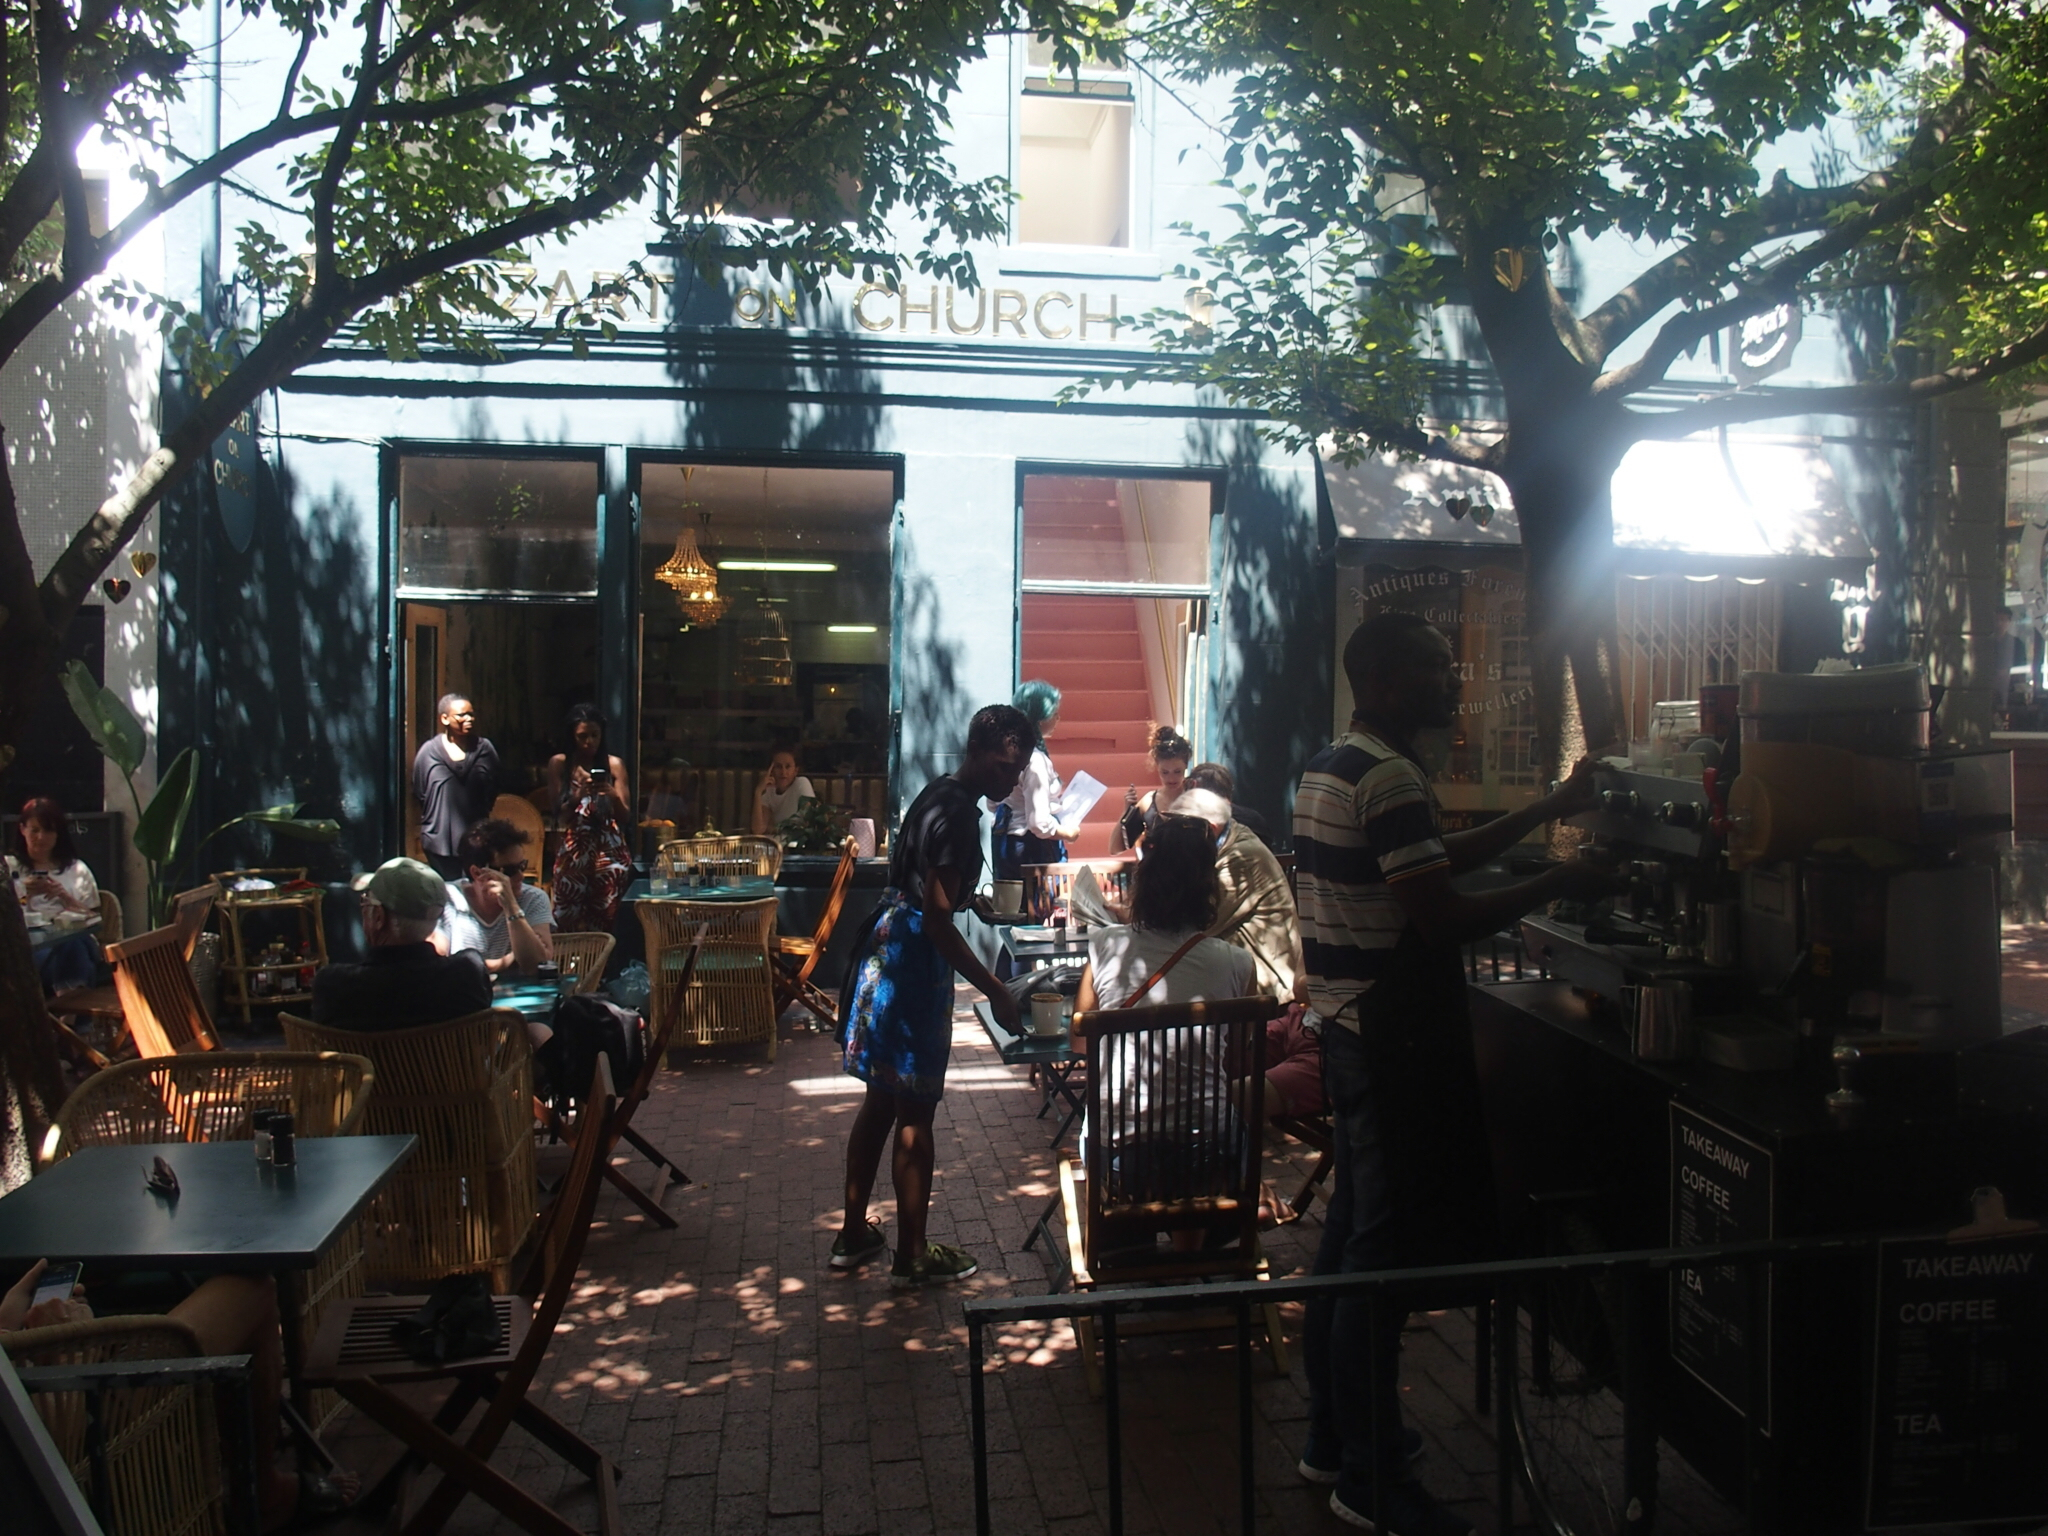 It felt surprisingly mellow in Cape Town, like at this café in the city center.